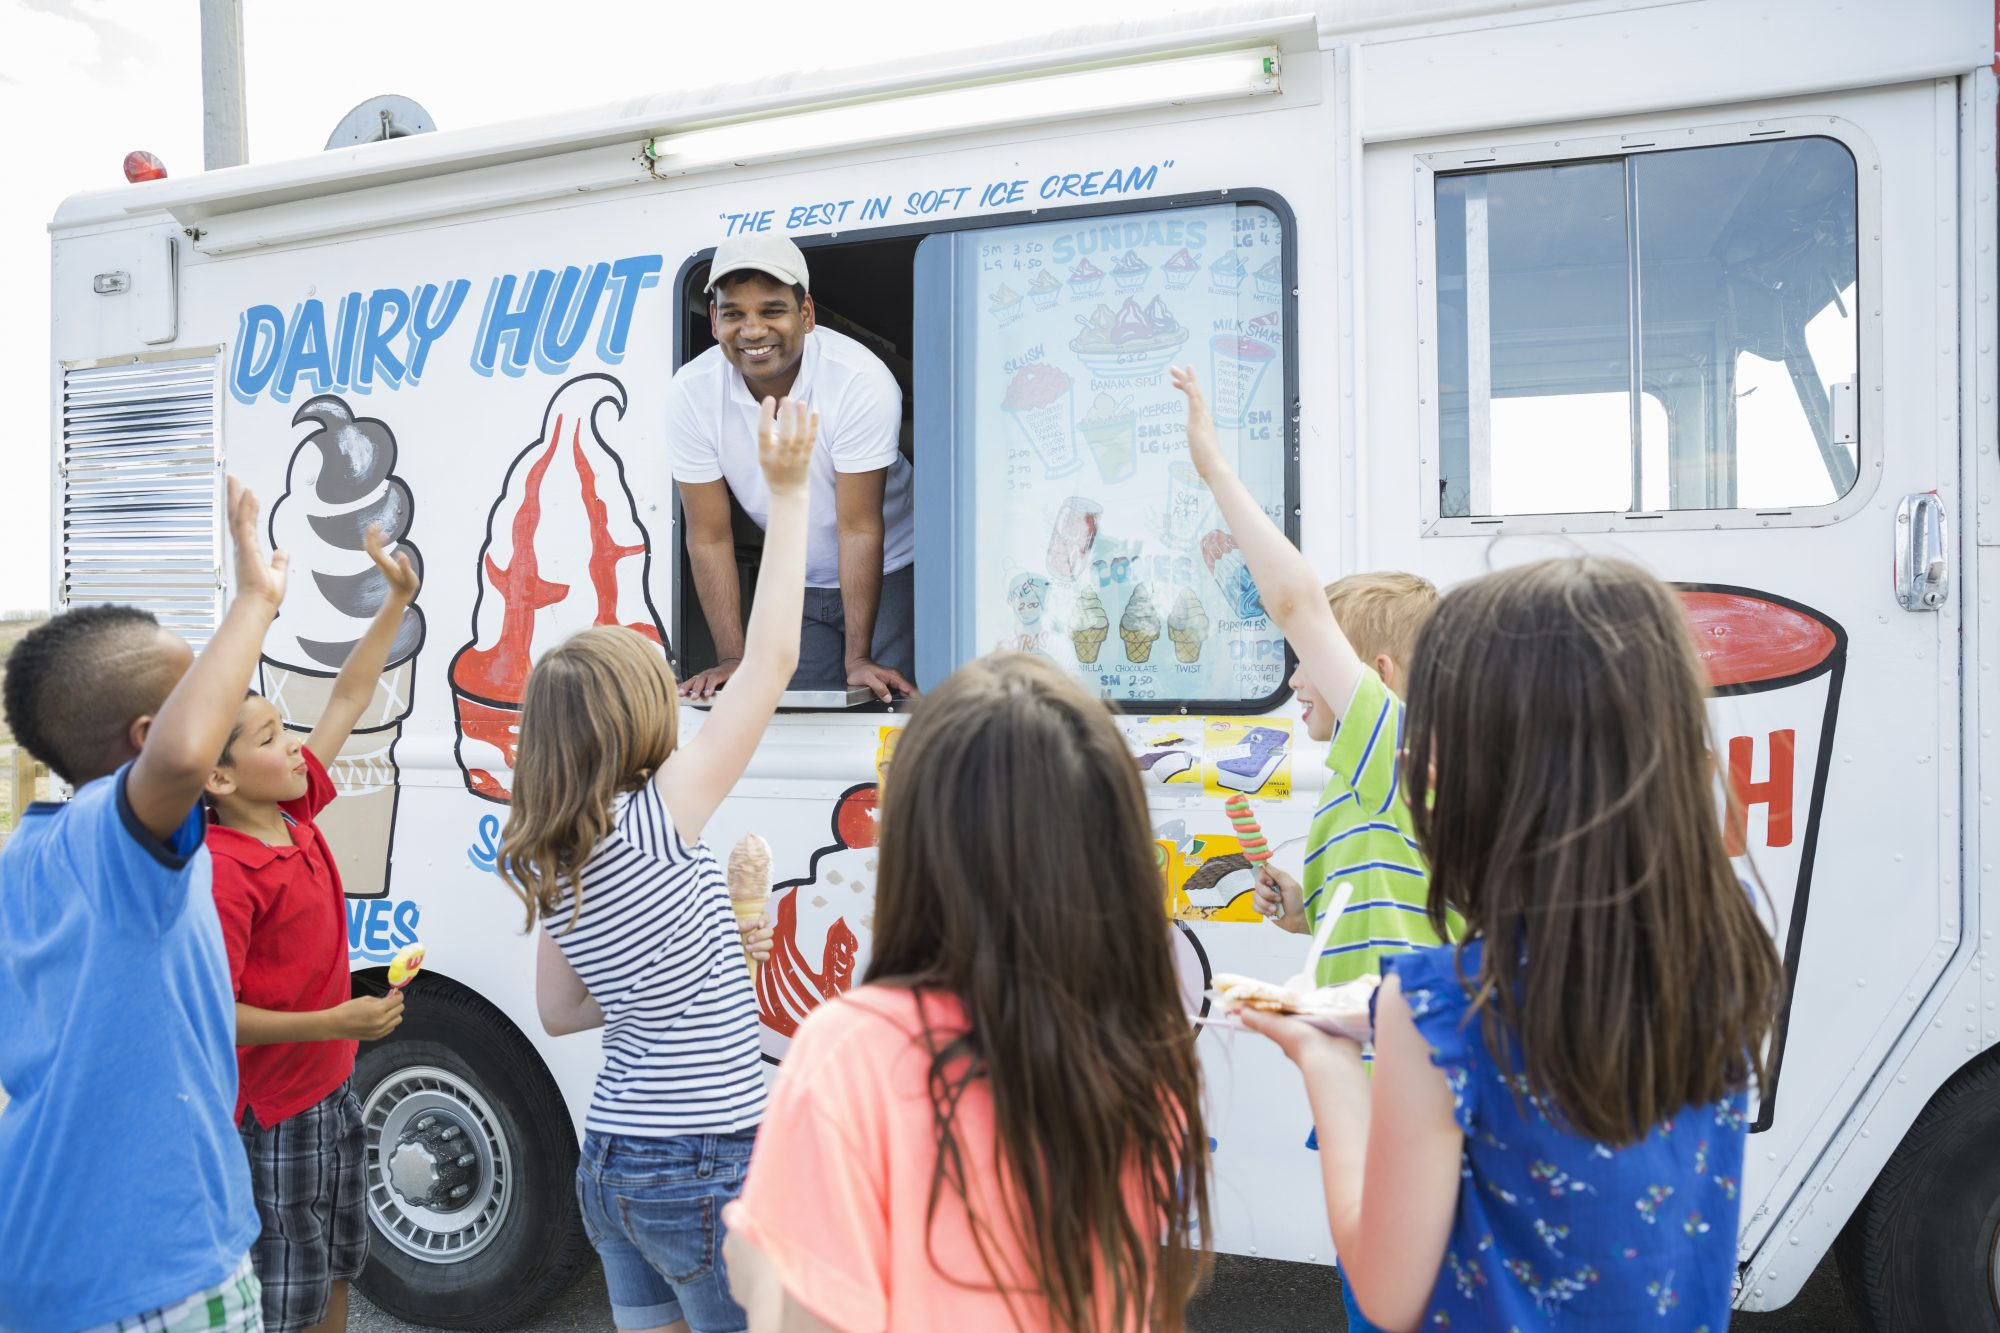 New York City Cracks Down on Ice Cream Trucks With 'Operation Meltdown'